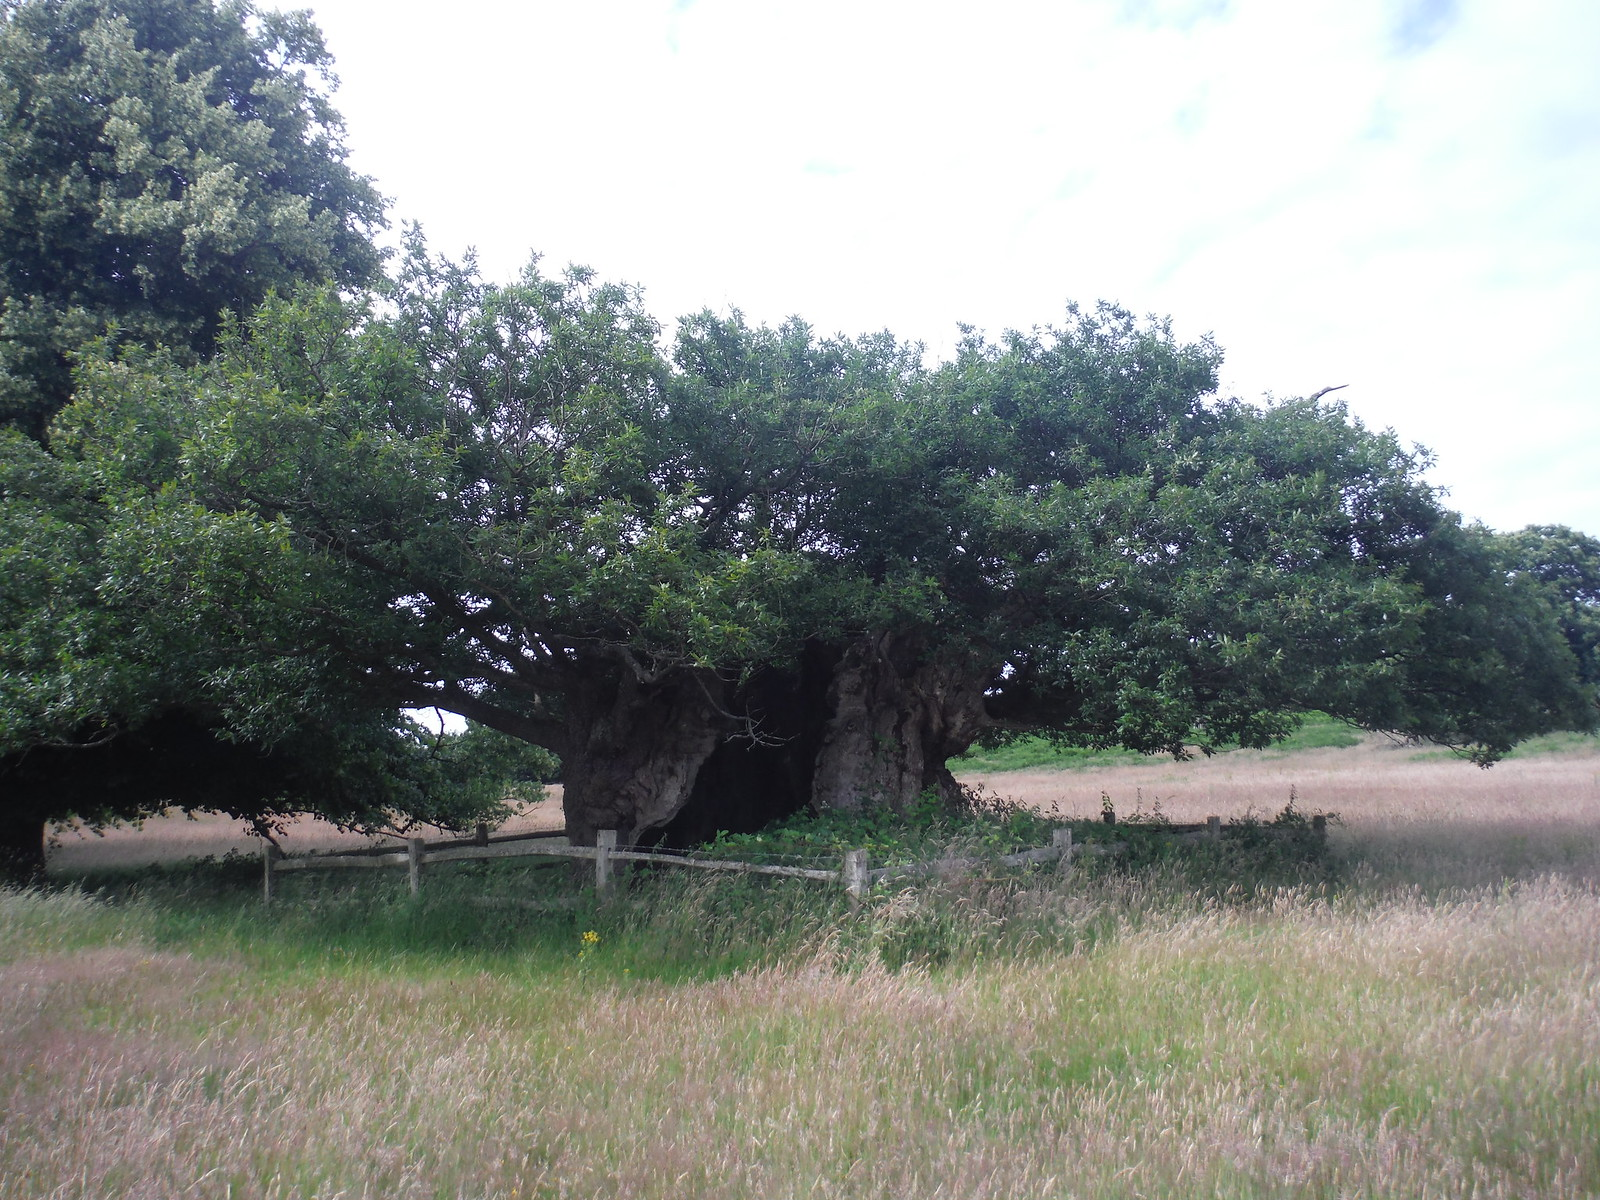 Queen Elizabeth I Oak, Cowdray Park SWC Walk 48 Haslemere to Midhurst (via Lurgashall or Lickfold)